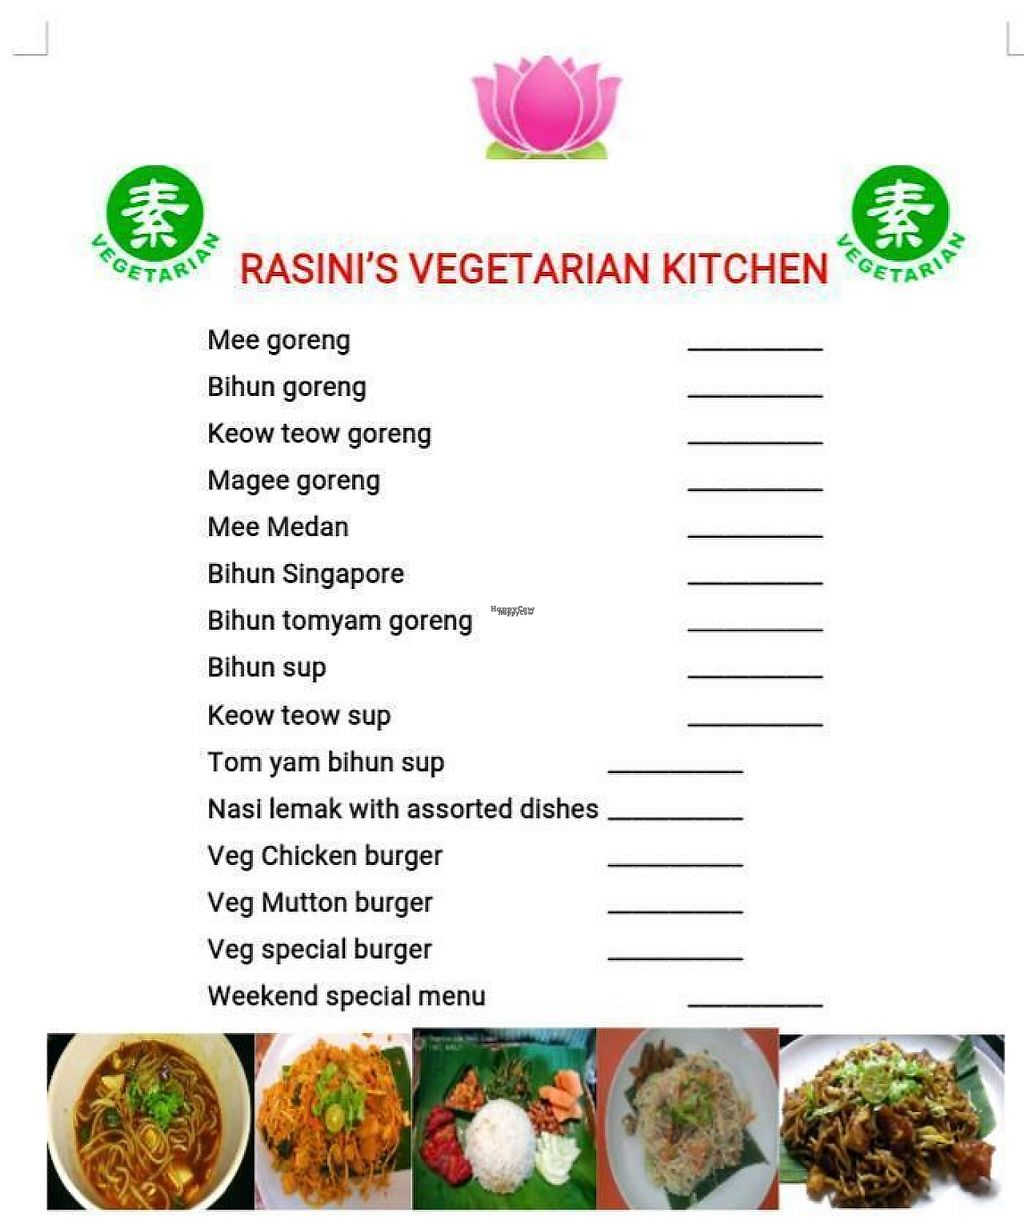 """Photo of Rasini's Vegetarian Kitchen - Restaurant 1998  by <a href=""""/members/profile/walter007"""">walter007</a> <br/>menu <br/> March 9, 2017  - <a href='/contact/abuse/image/88285/234543'>Report</a>"""